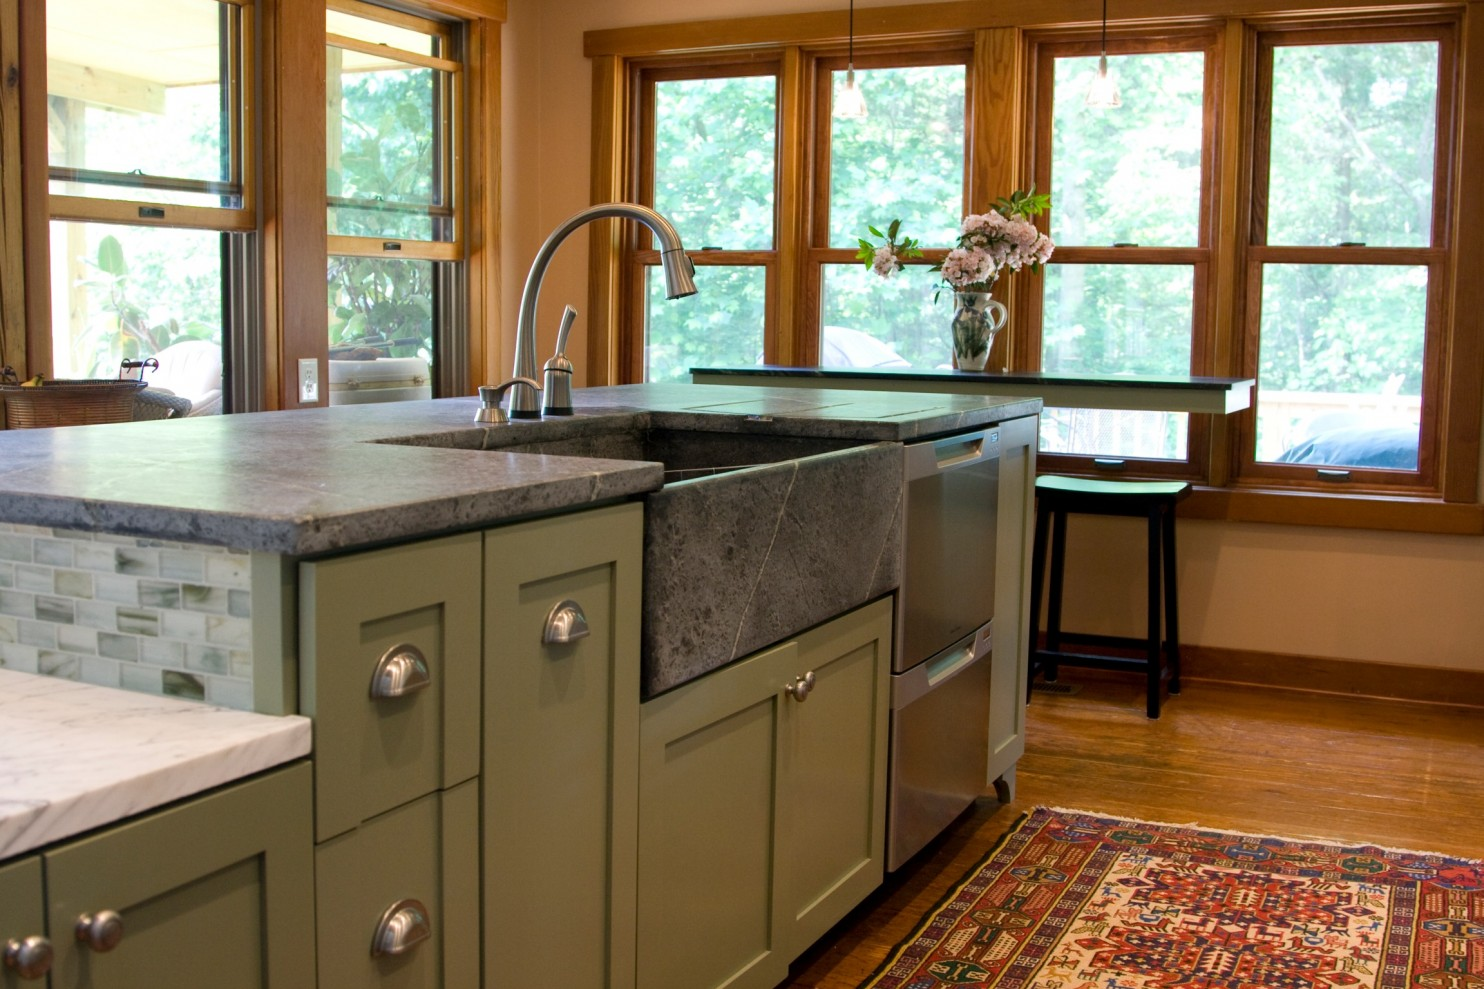 use Lowes or Home Depot for your granite countertops Quality Stone ...